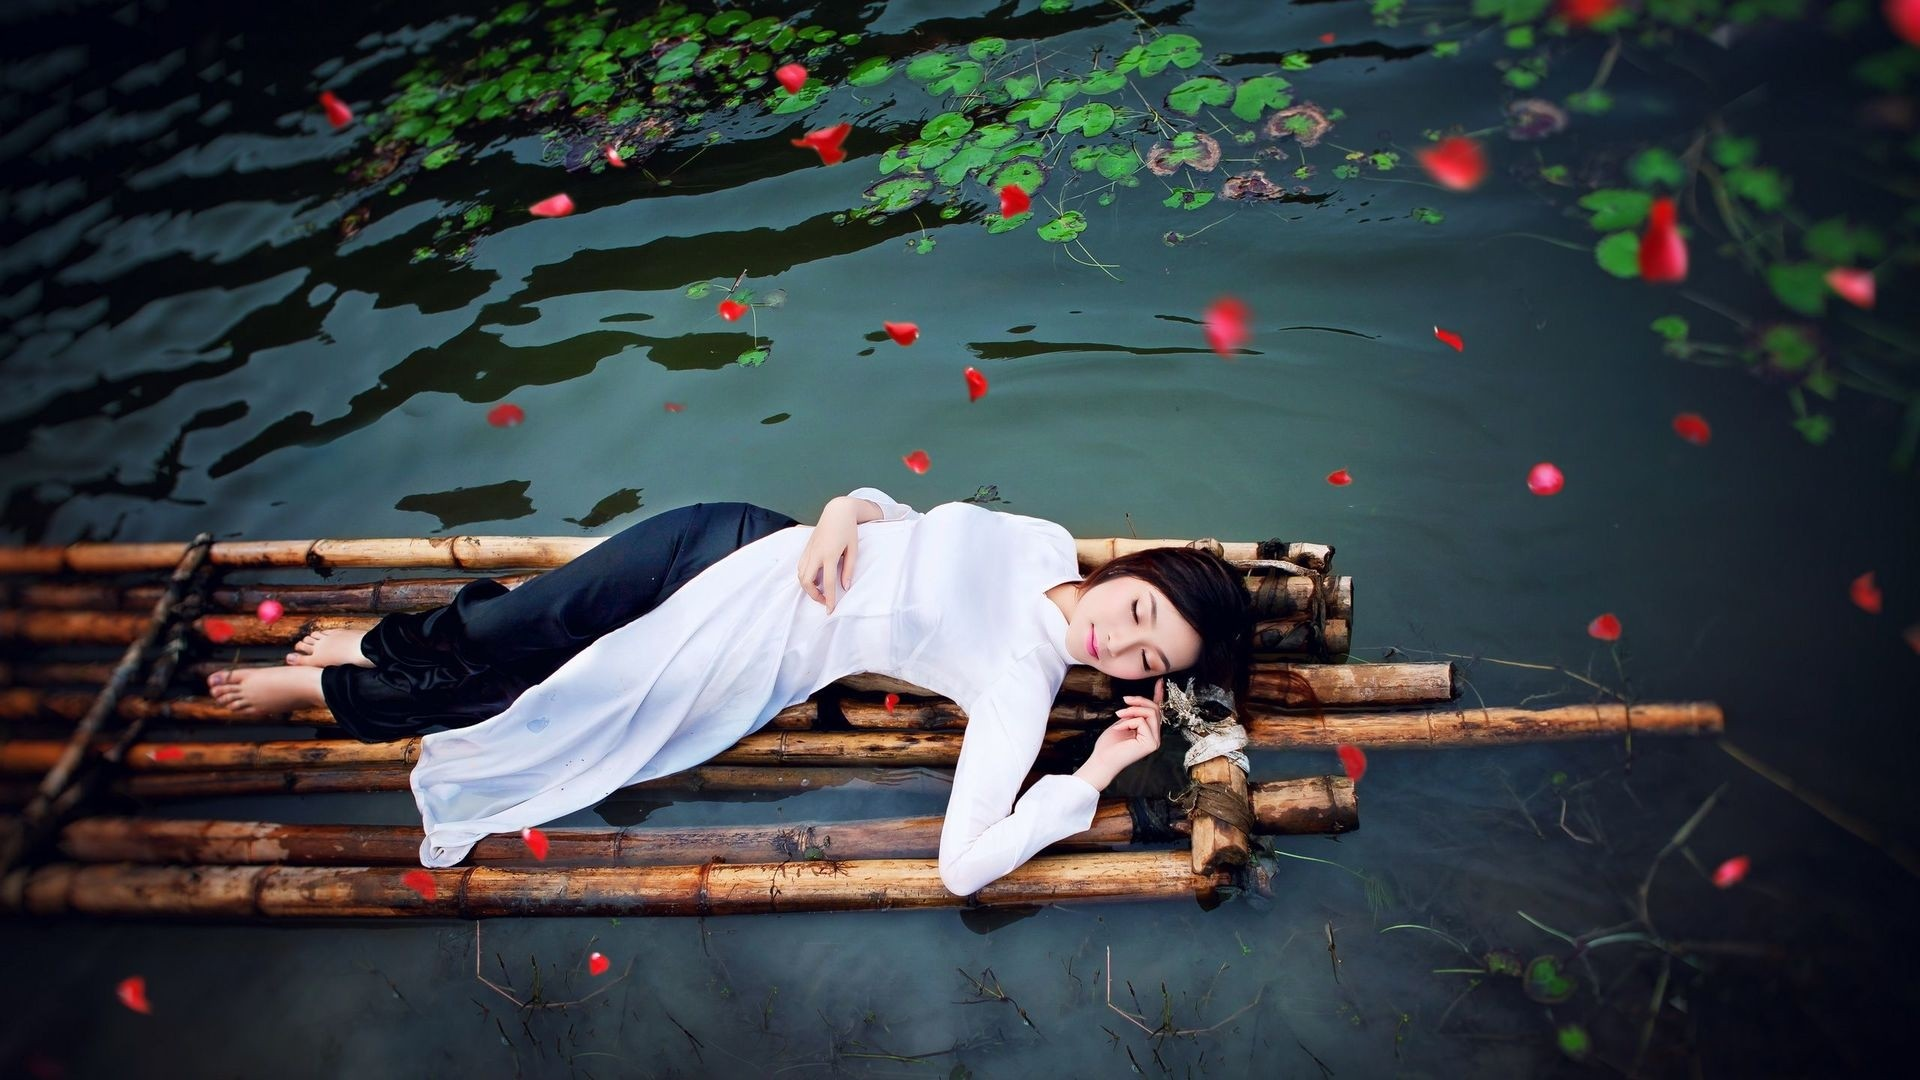 People 1920x1080 women model brunette long hair Asian closed eyes women outdoors lying on back nature water flower petals barefoot raft bamboo relaxation relaxing high angle